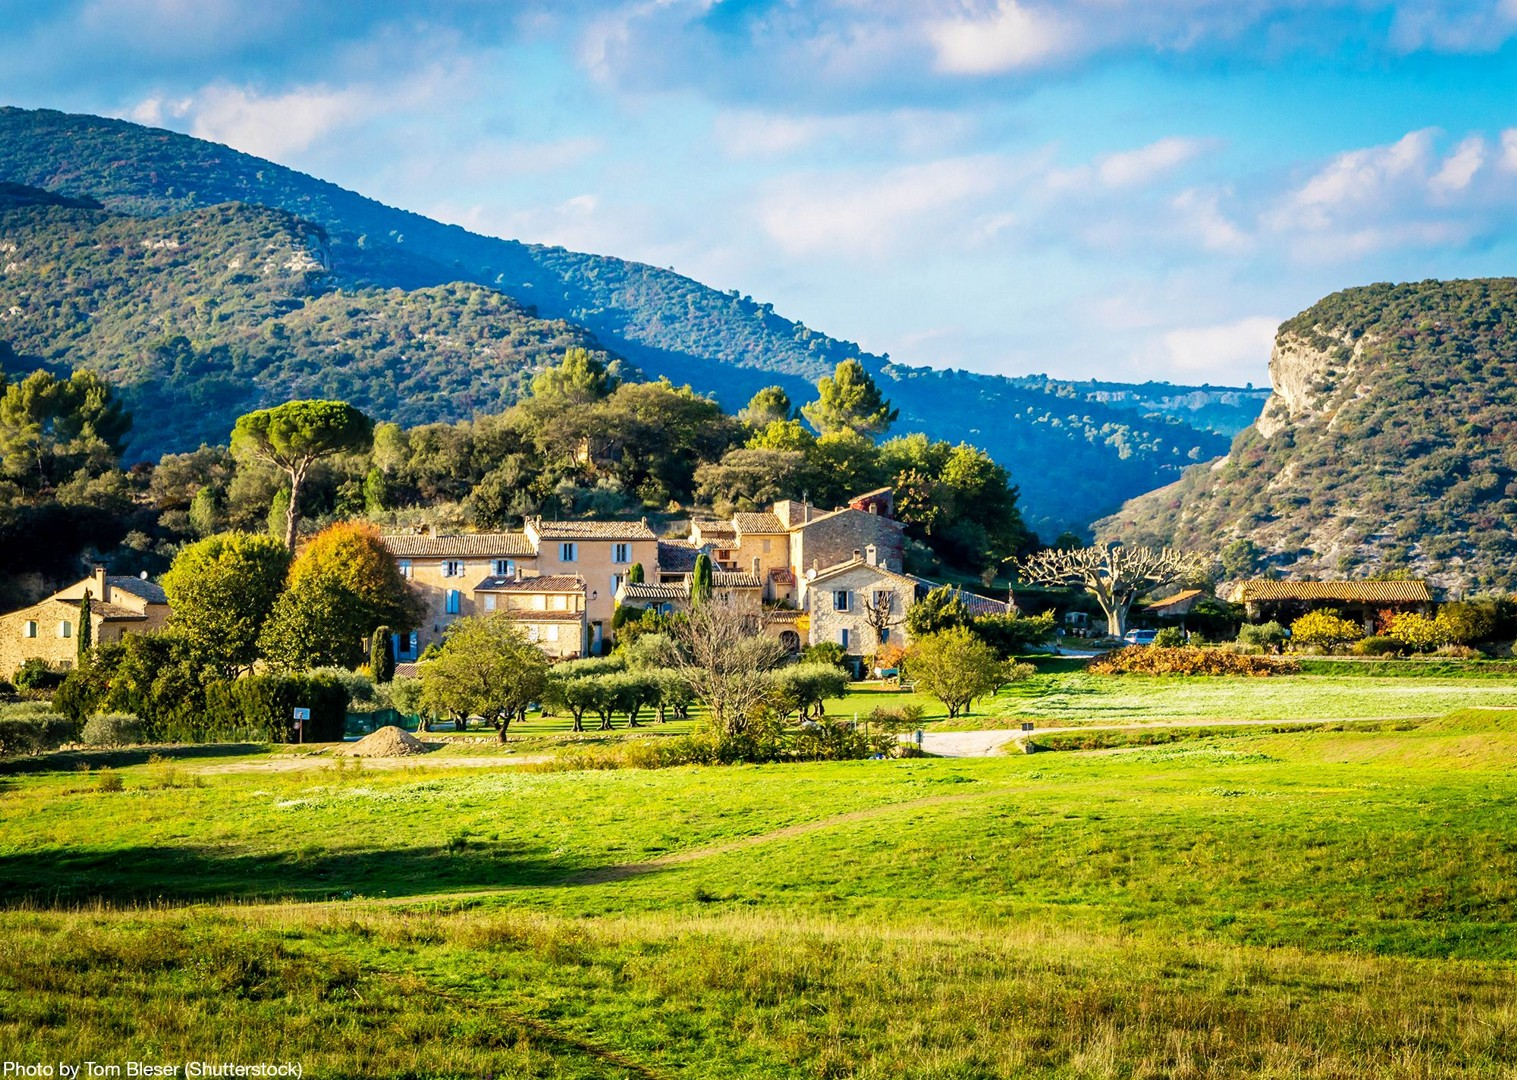 countryside-france-provence-self-guided-explore-on-bikes.jpg - France - Provence - Self-Guided Leisure Cycling Holiday - Leisure Cycling